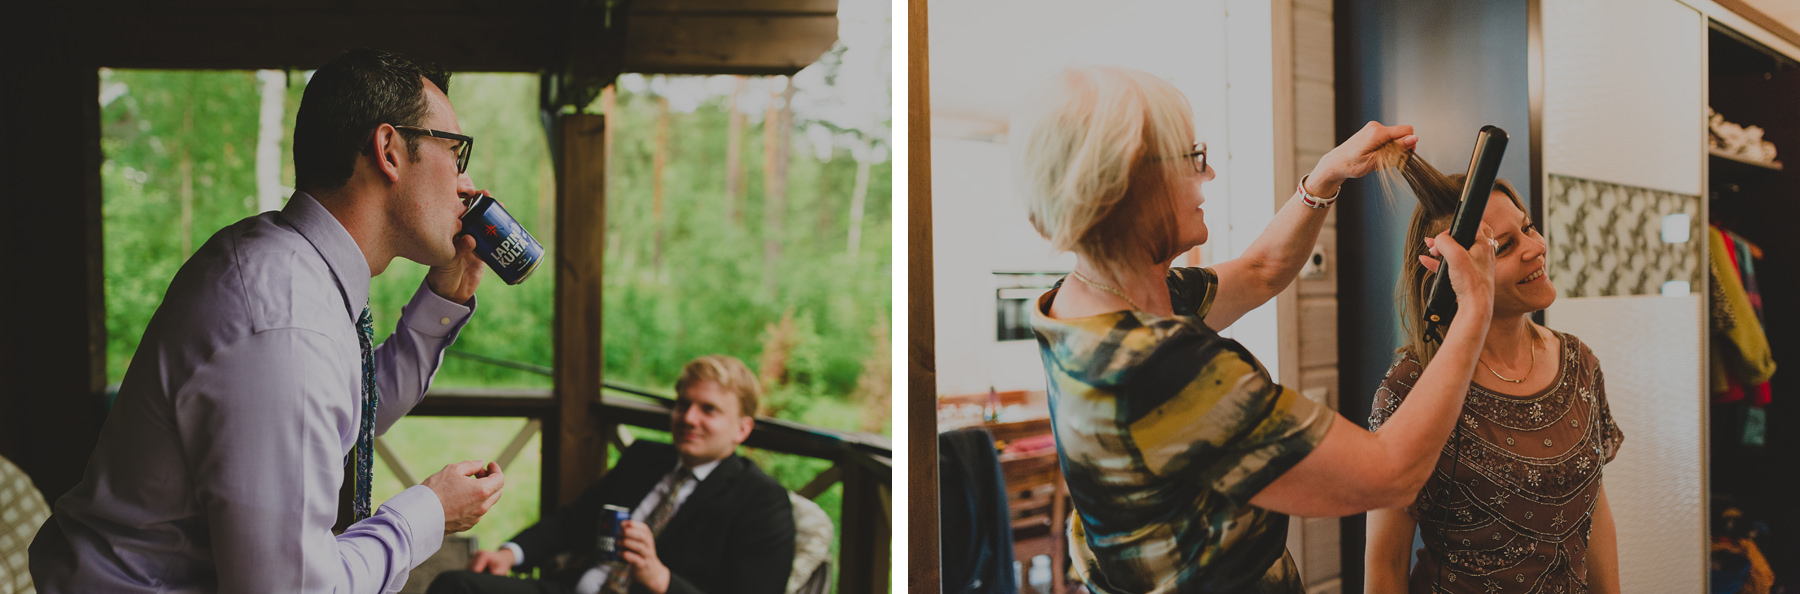 Finland Elopement Photographer 0058